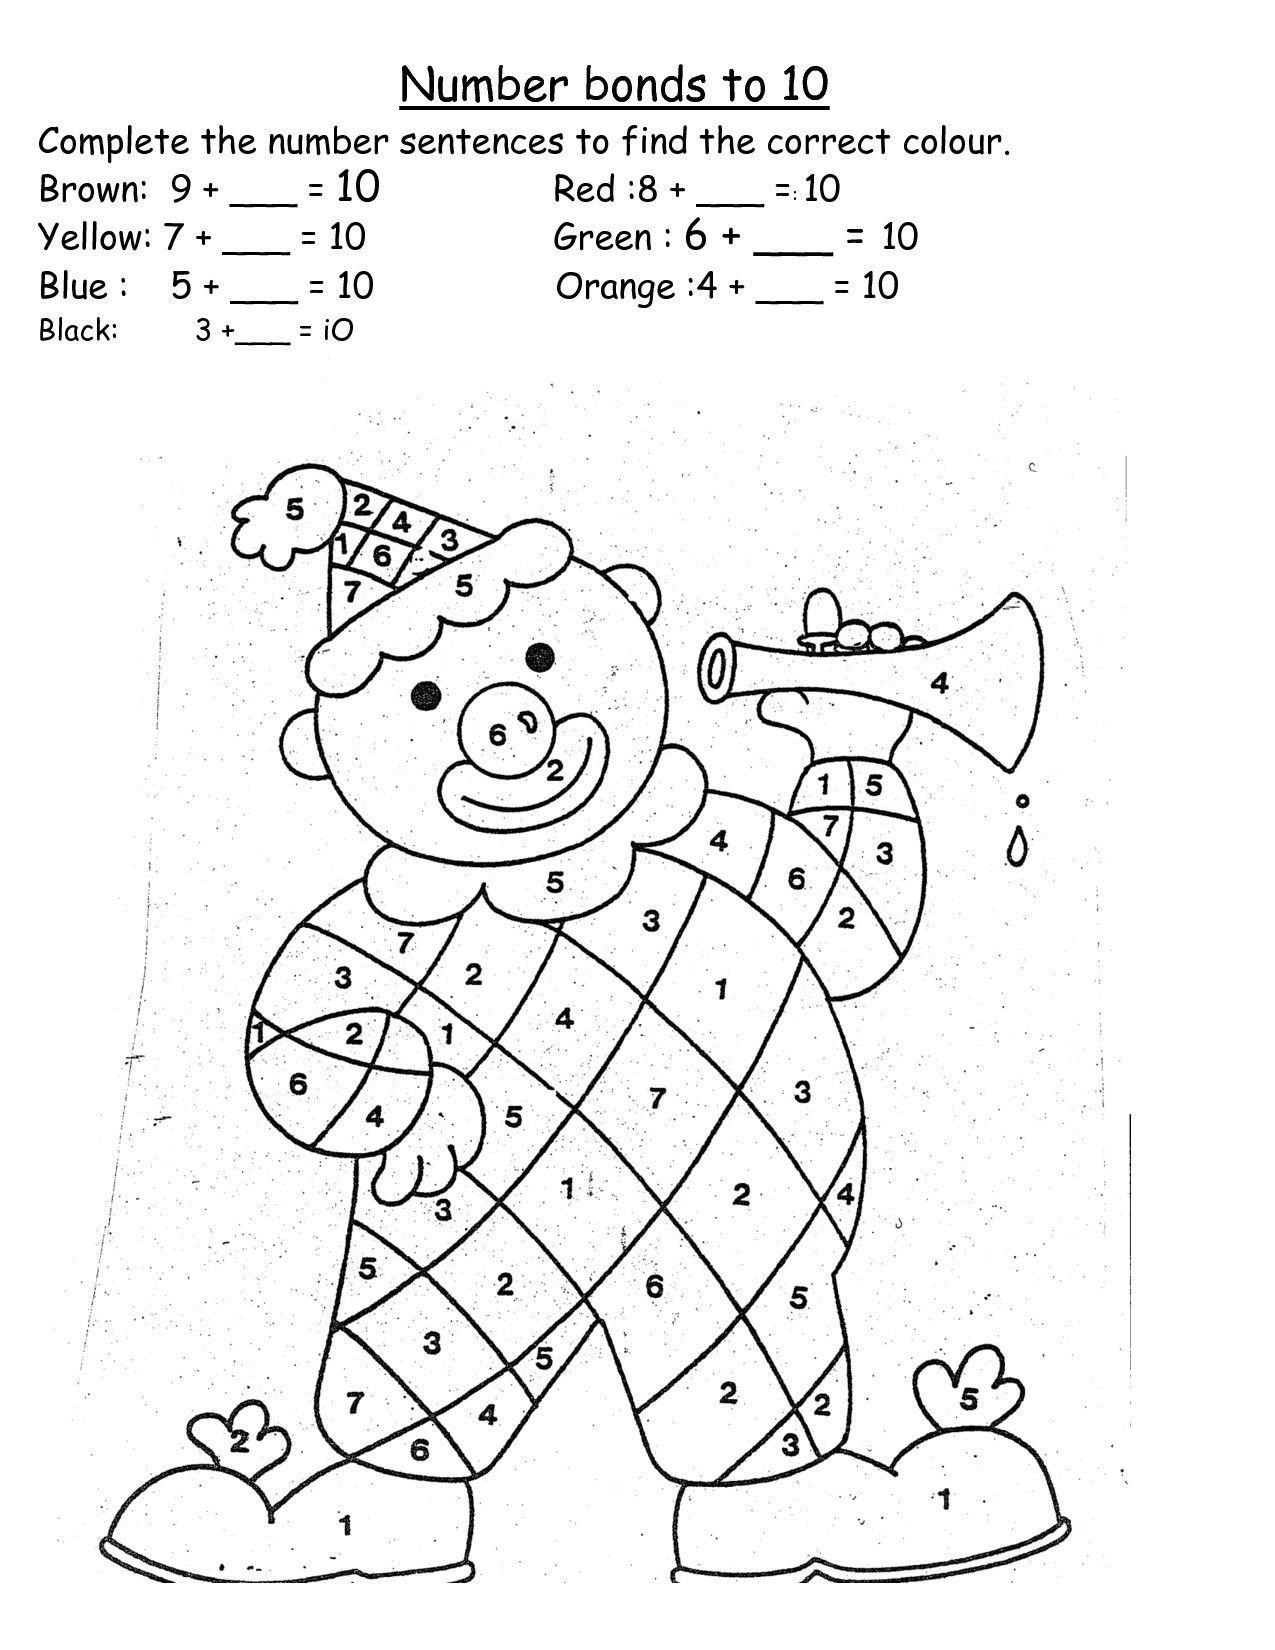 Number Bond Worksheets 2nd Grade Worksheets Worksheets Number Bonds for Grade Printable